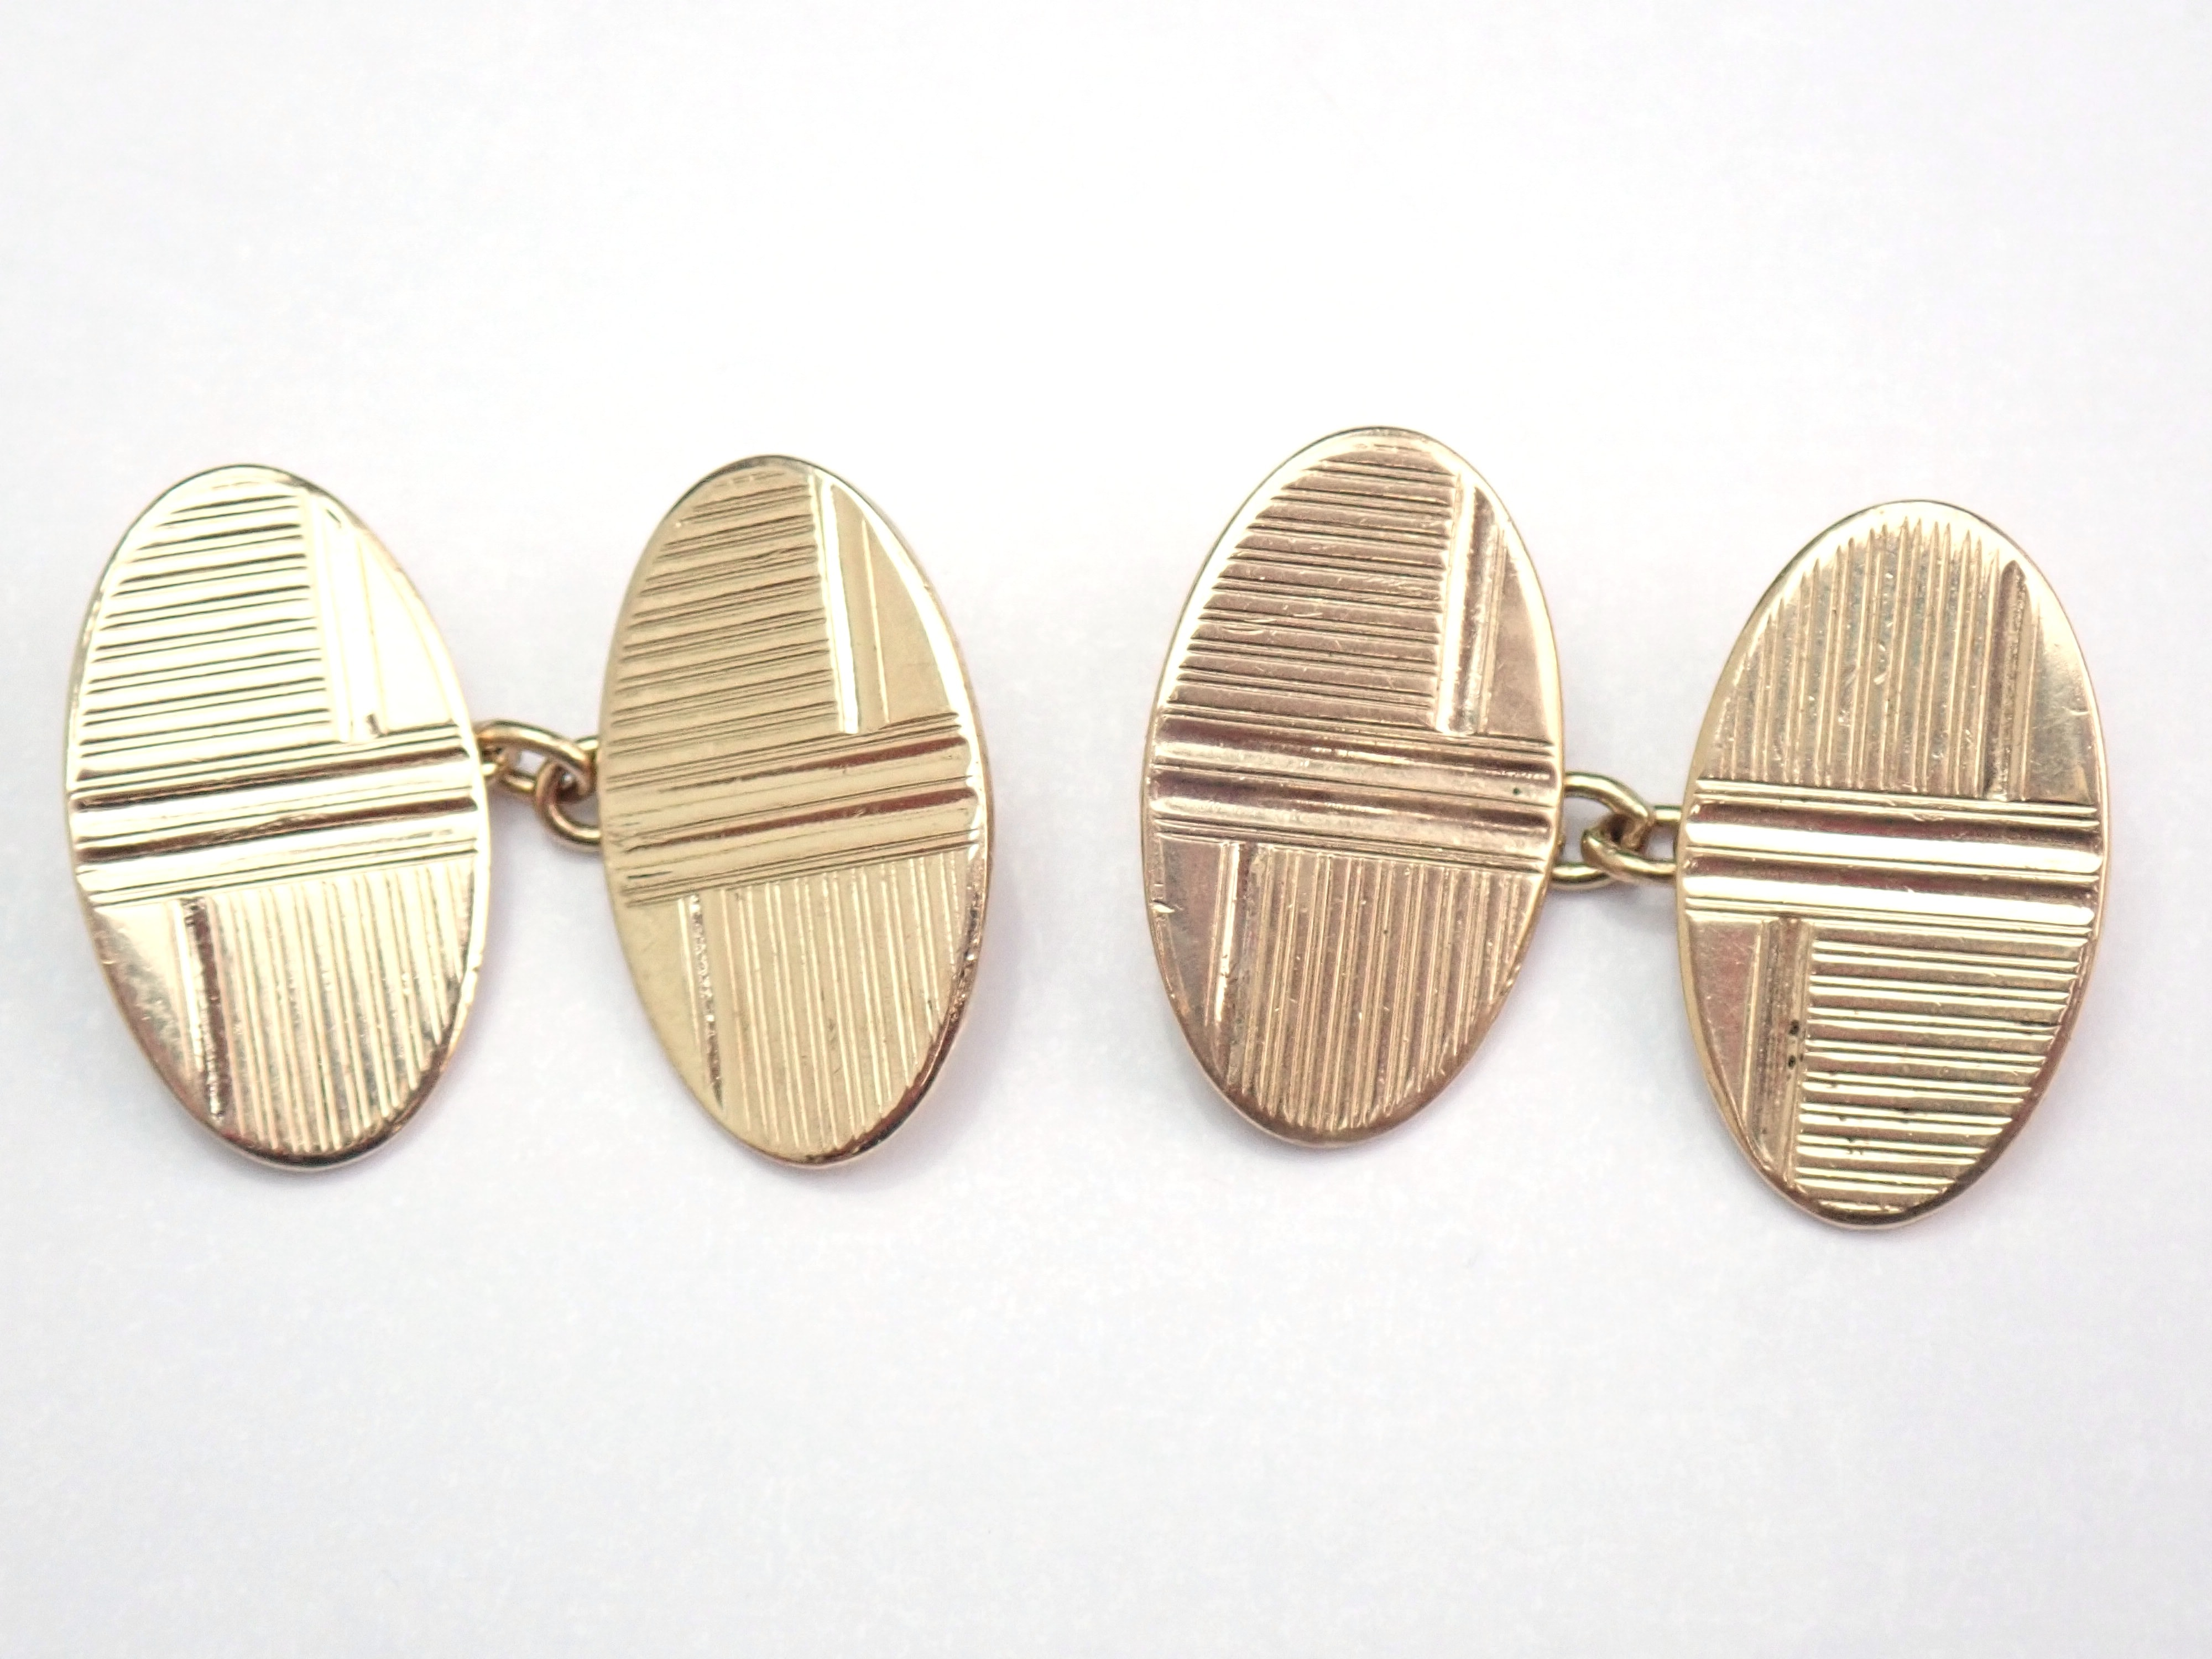 Solid 9ct yellow gold handmade Oval shaped cufflinks. 6.0gms – #110